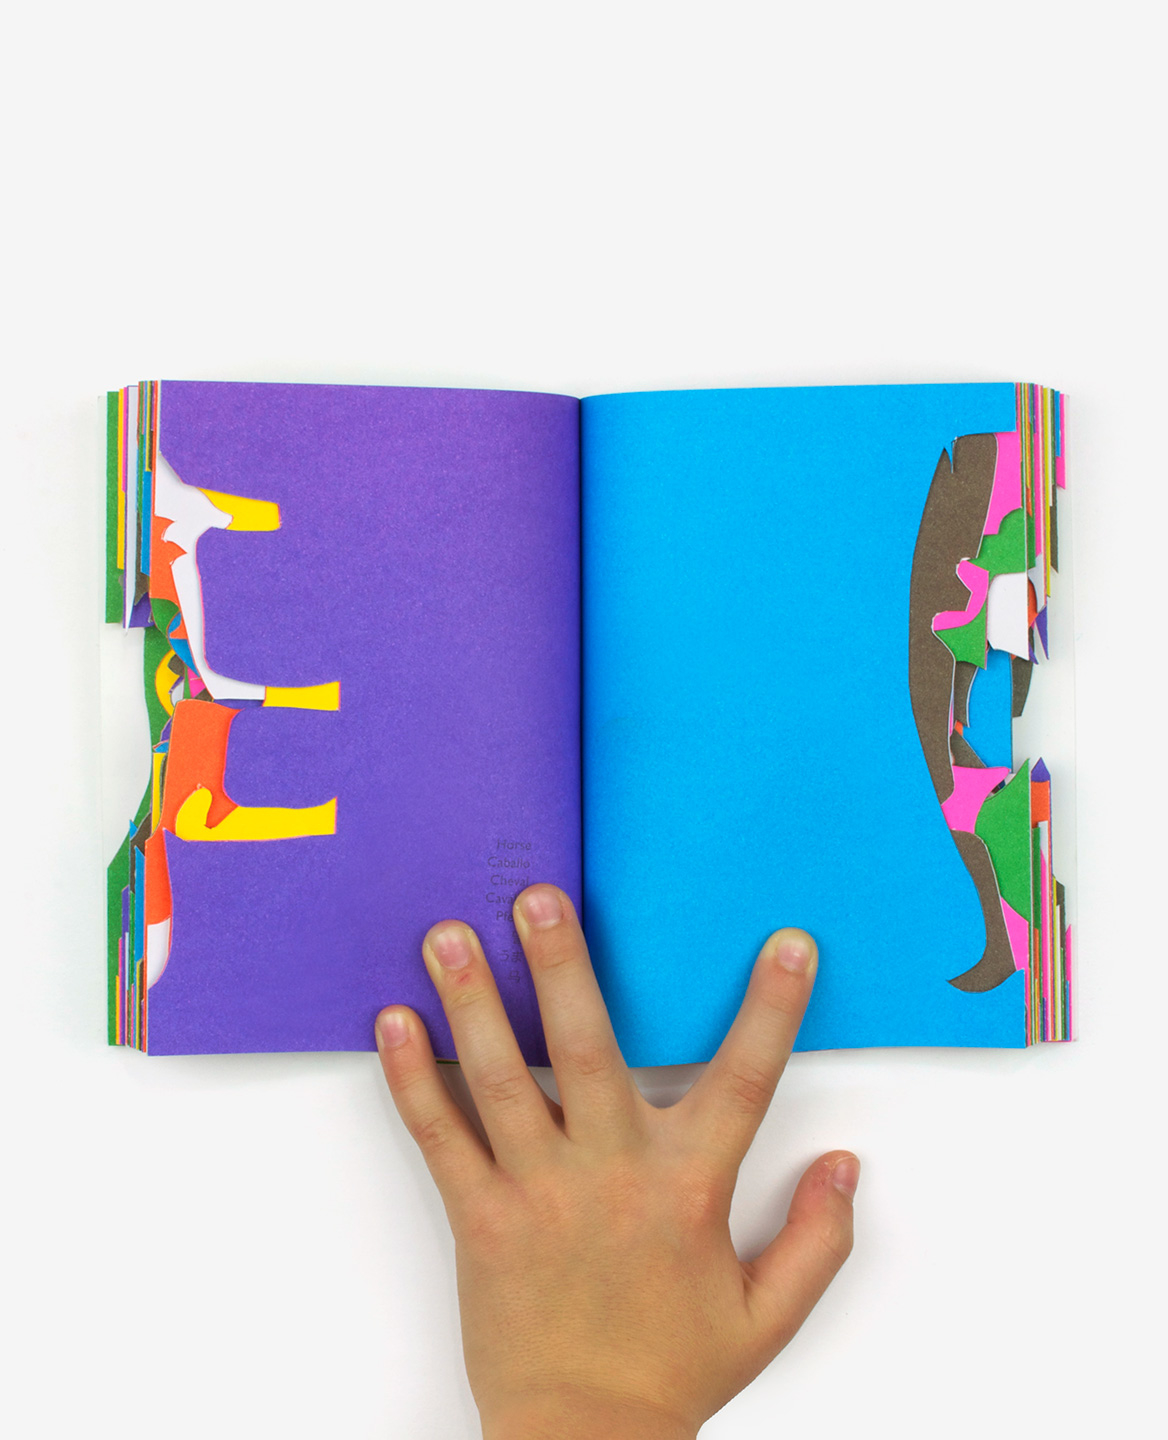 Colorful silhouettes of animals cut out from the book Zoo in my hand by Inkyeong & Sunkyung Kim published by Éditions du livre